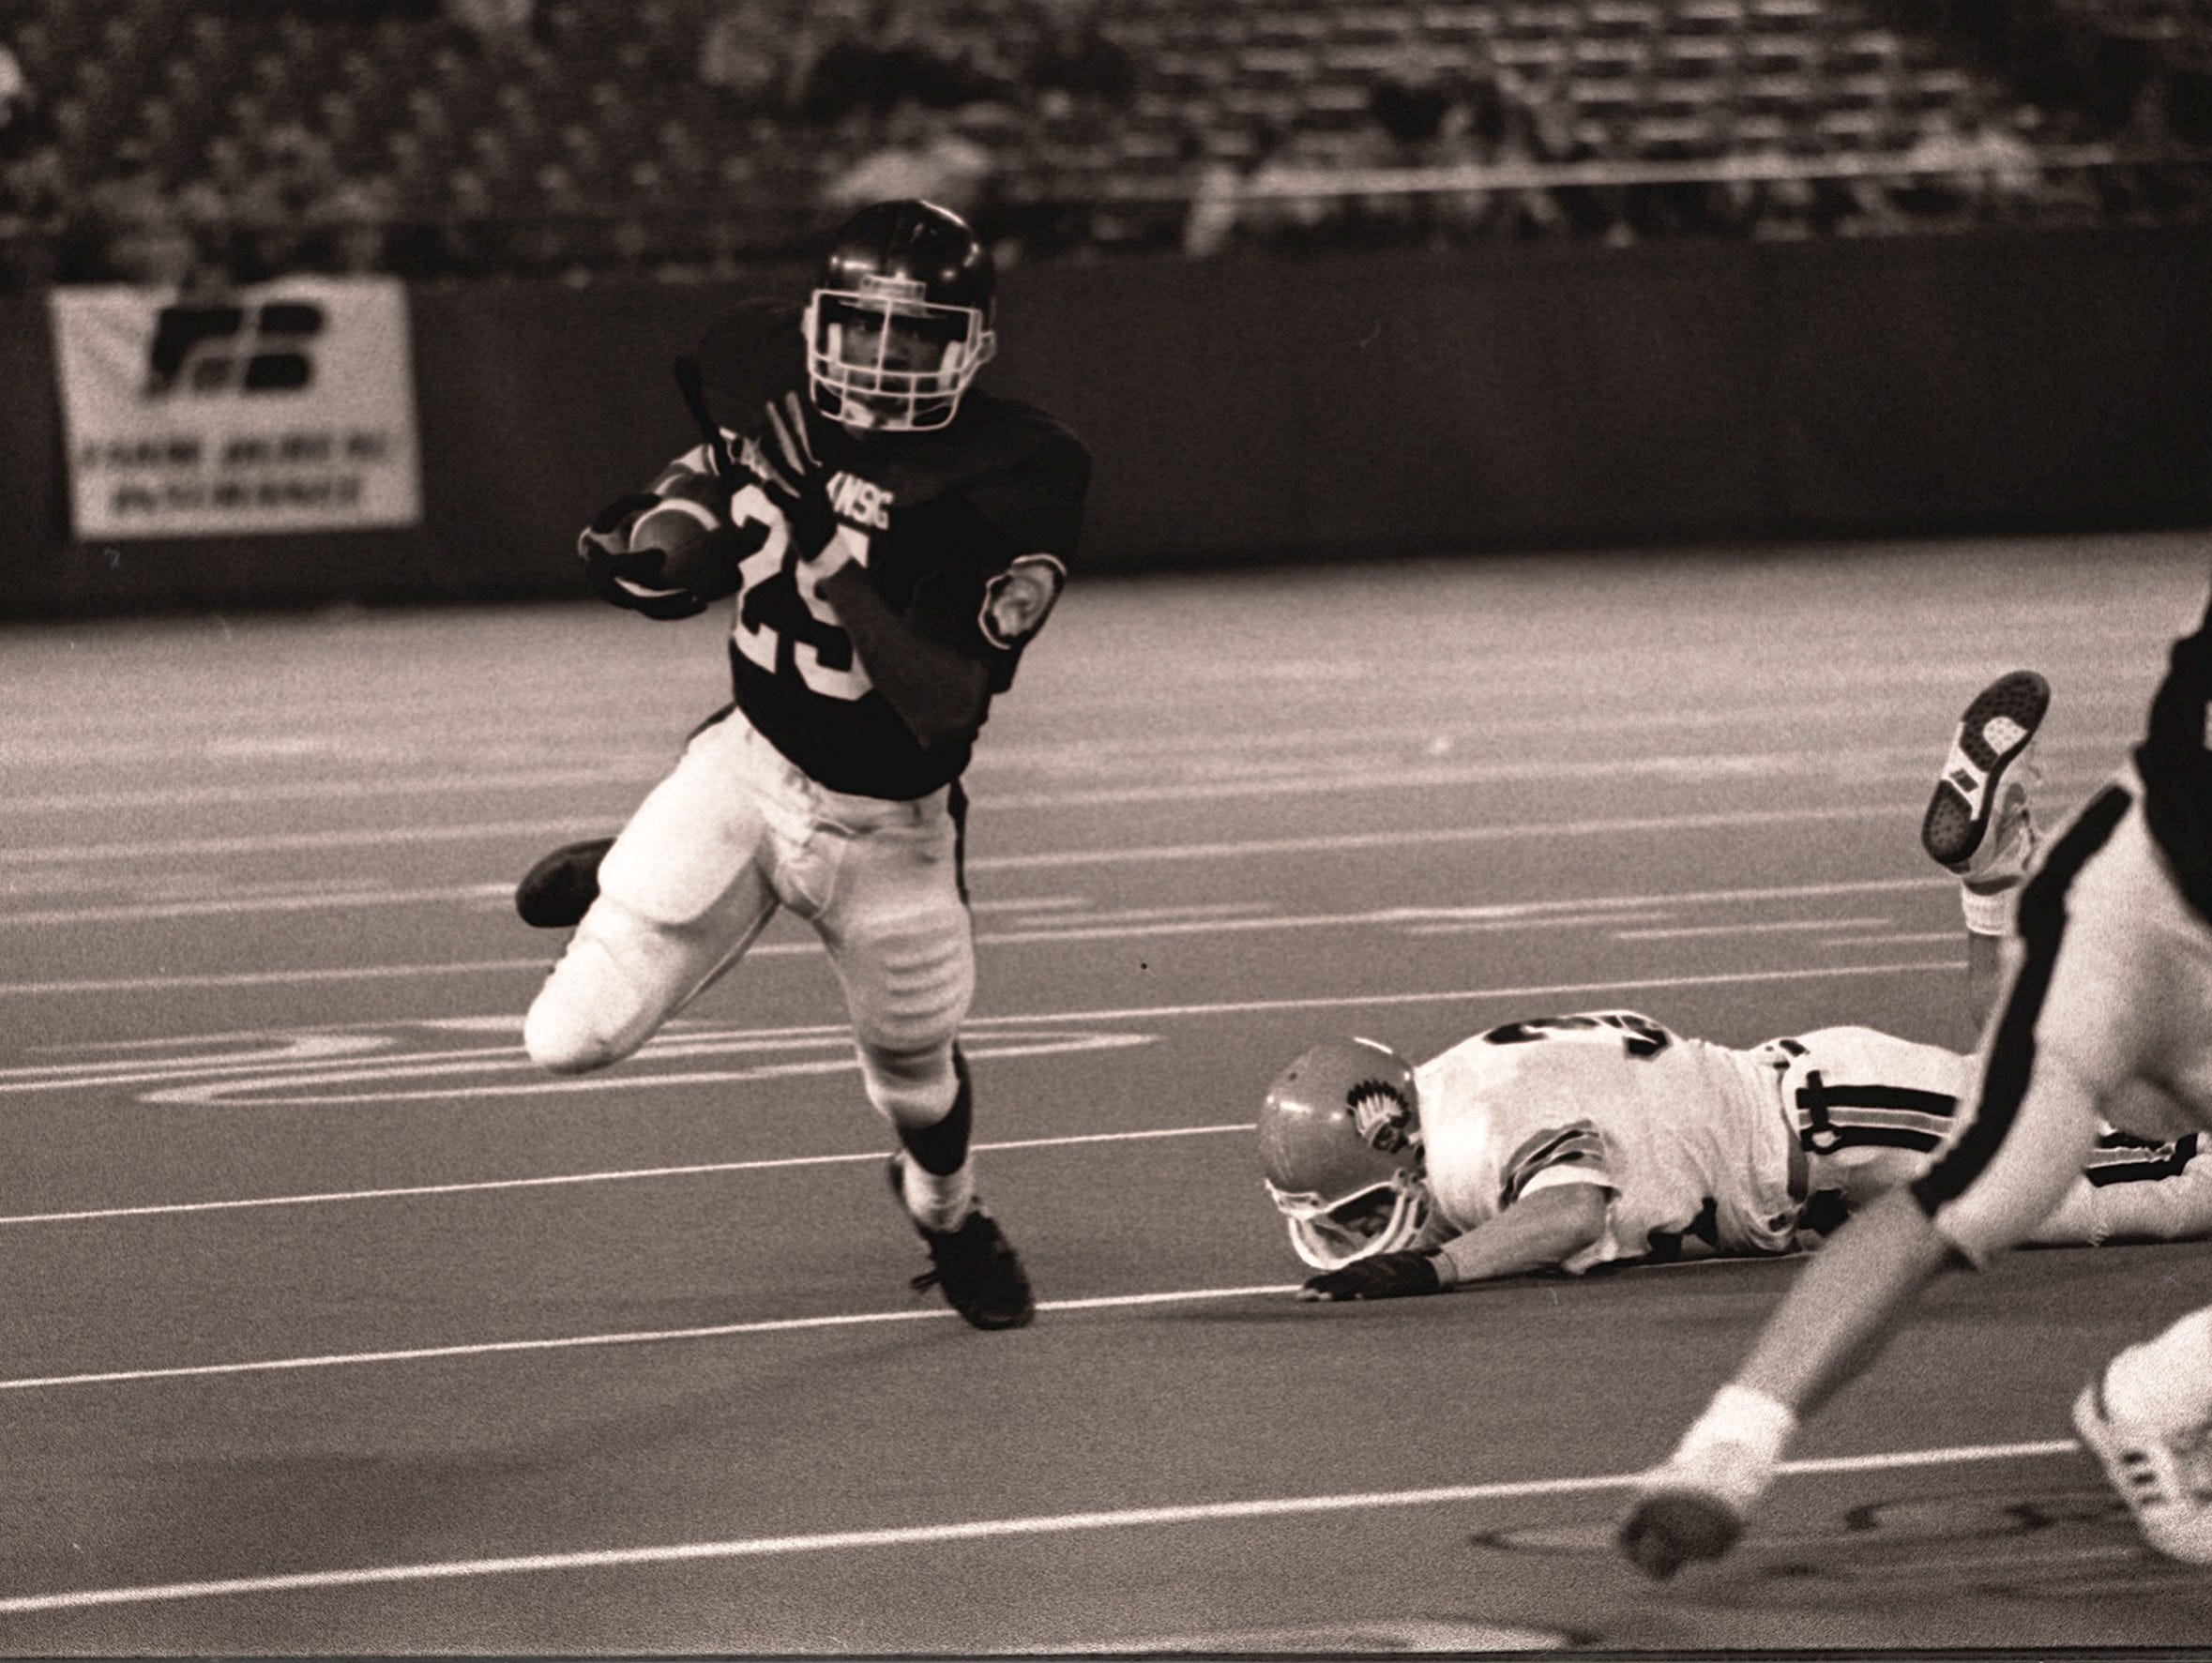 East Lansing's Randy Kinder helped the Trojans defeat Birmingham Brother Rice, 14-0, in the 1991 Class A state football championship game at the Pontiac Silverdome.